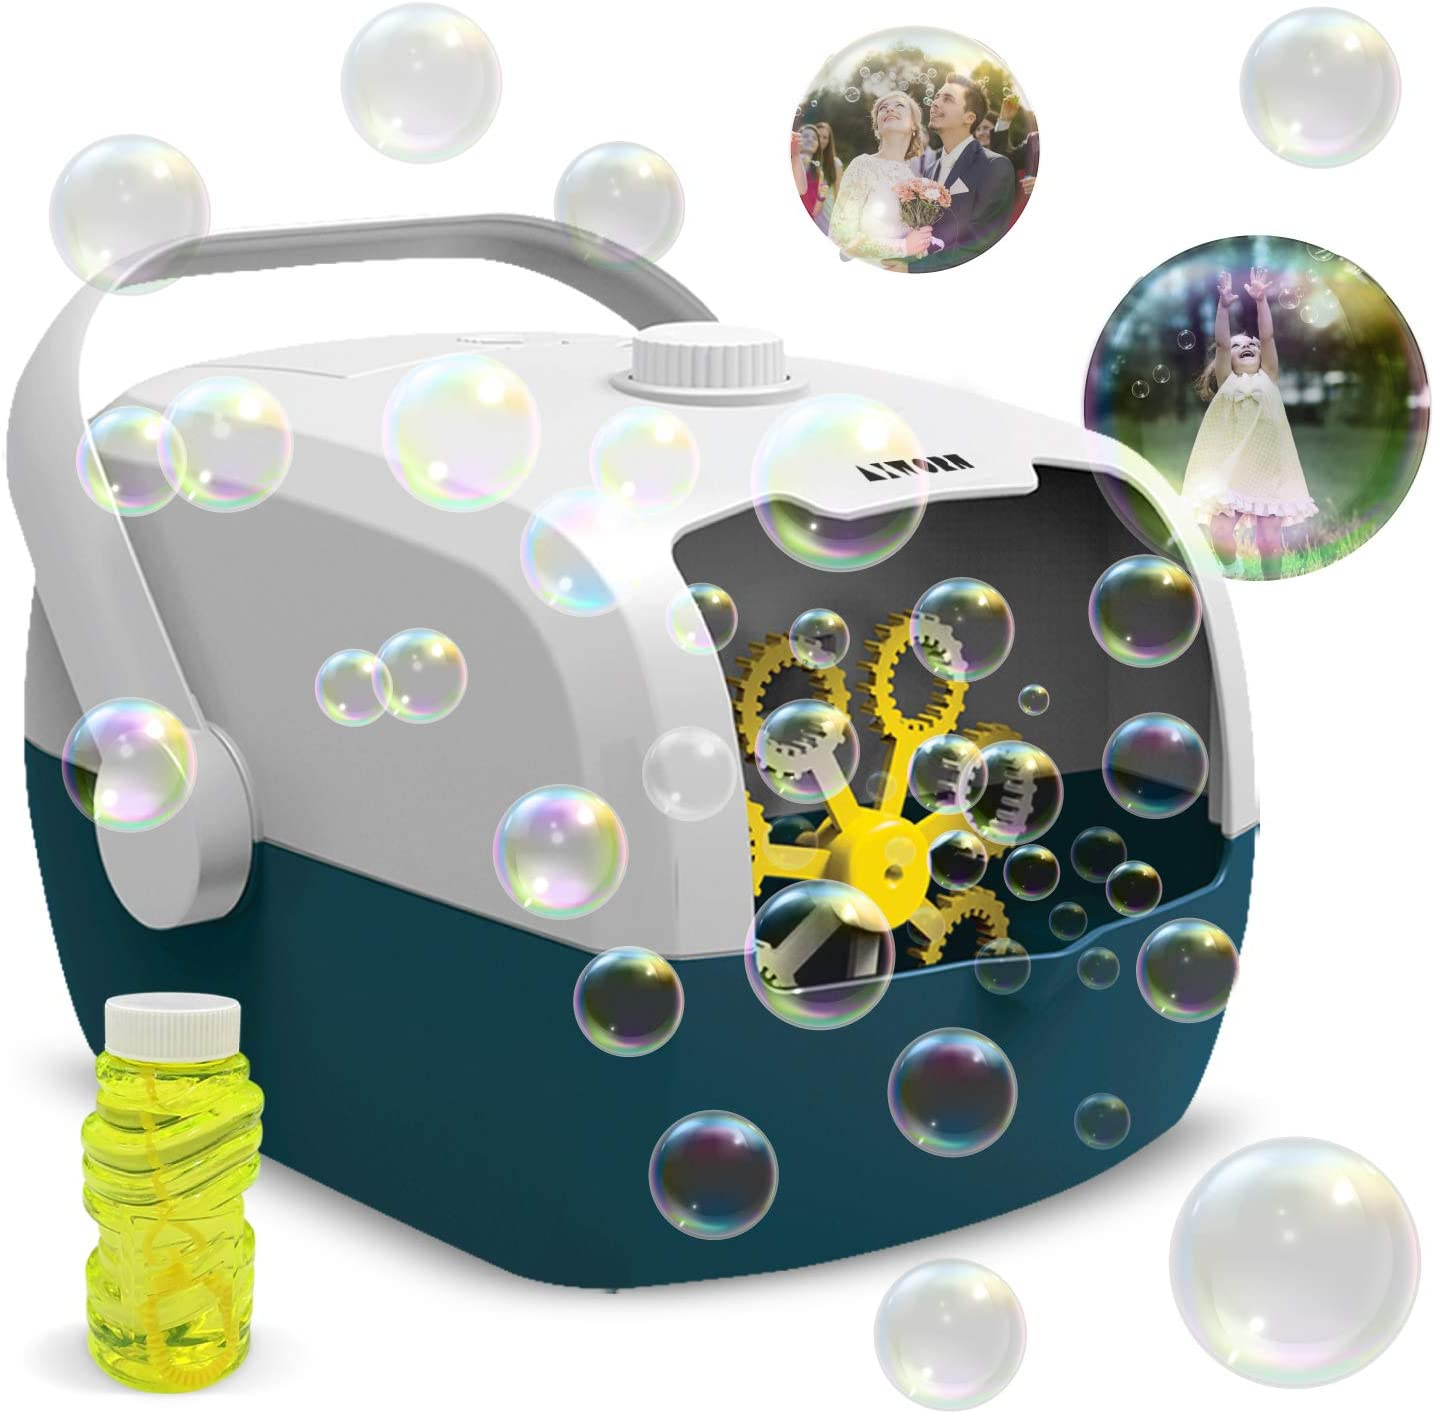 Bubble Machine for Kids, Automatic Bubble Blower - Portable Auto Bubble Maker with High Output for Outdoor Indoor Party Birthday - Bubbles for Kids & Toddlers- Includes Bubble Liquid Soap